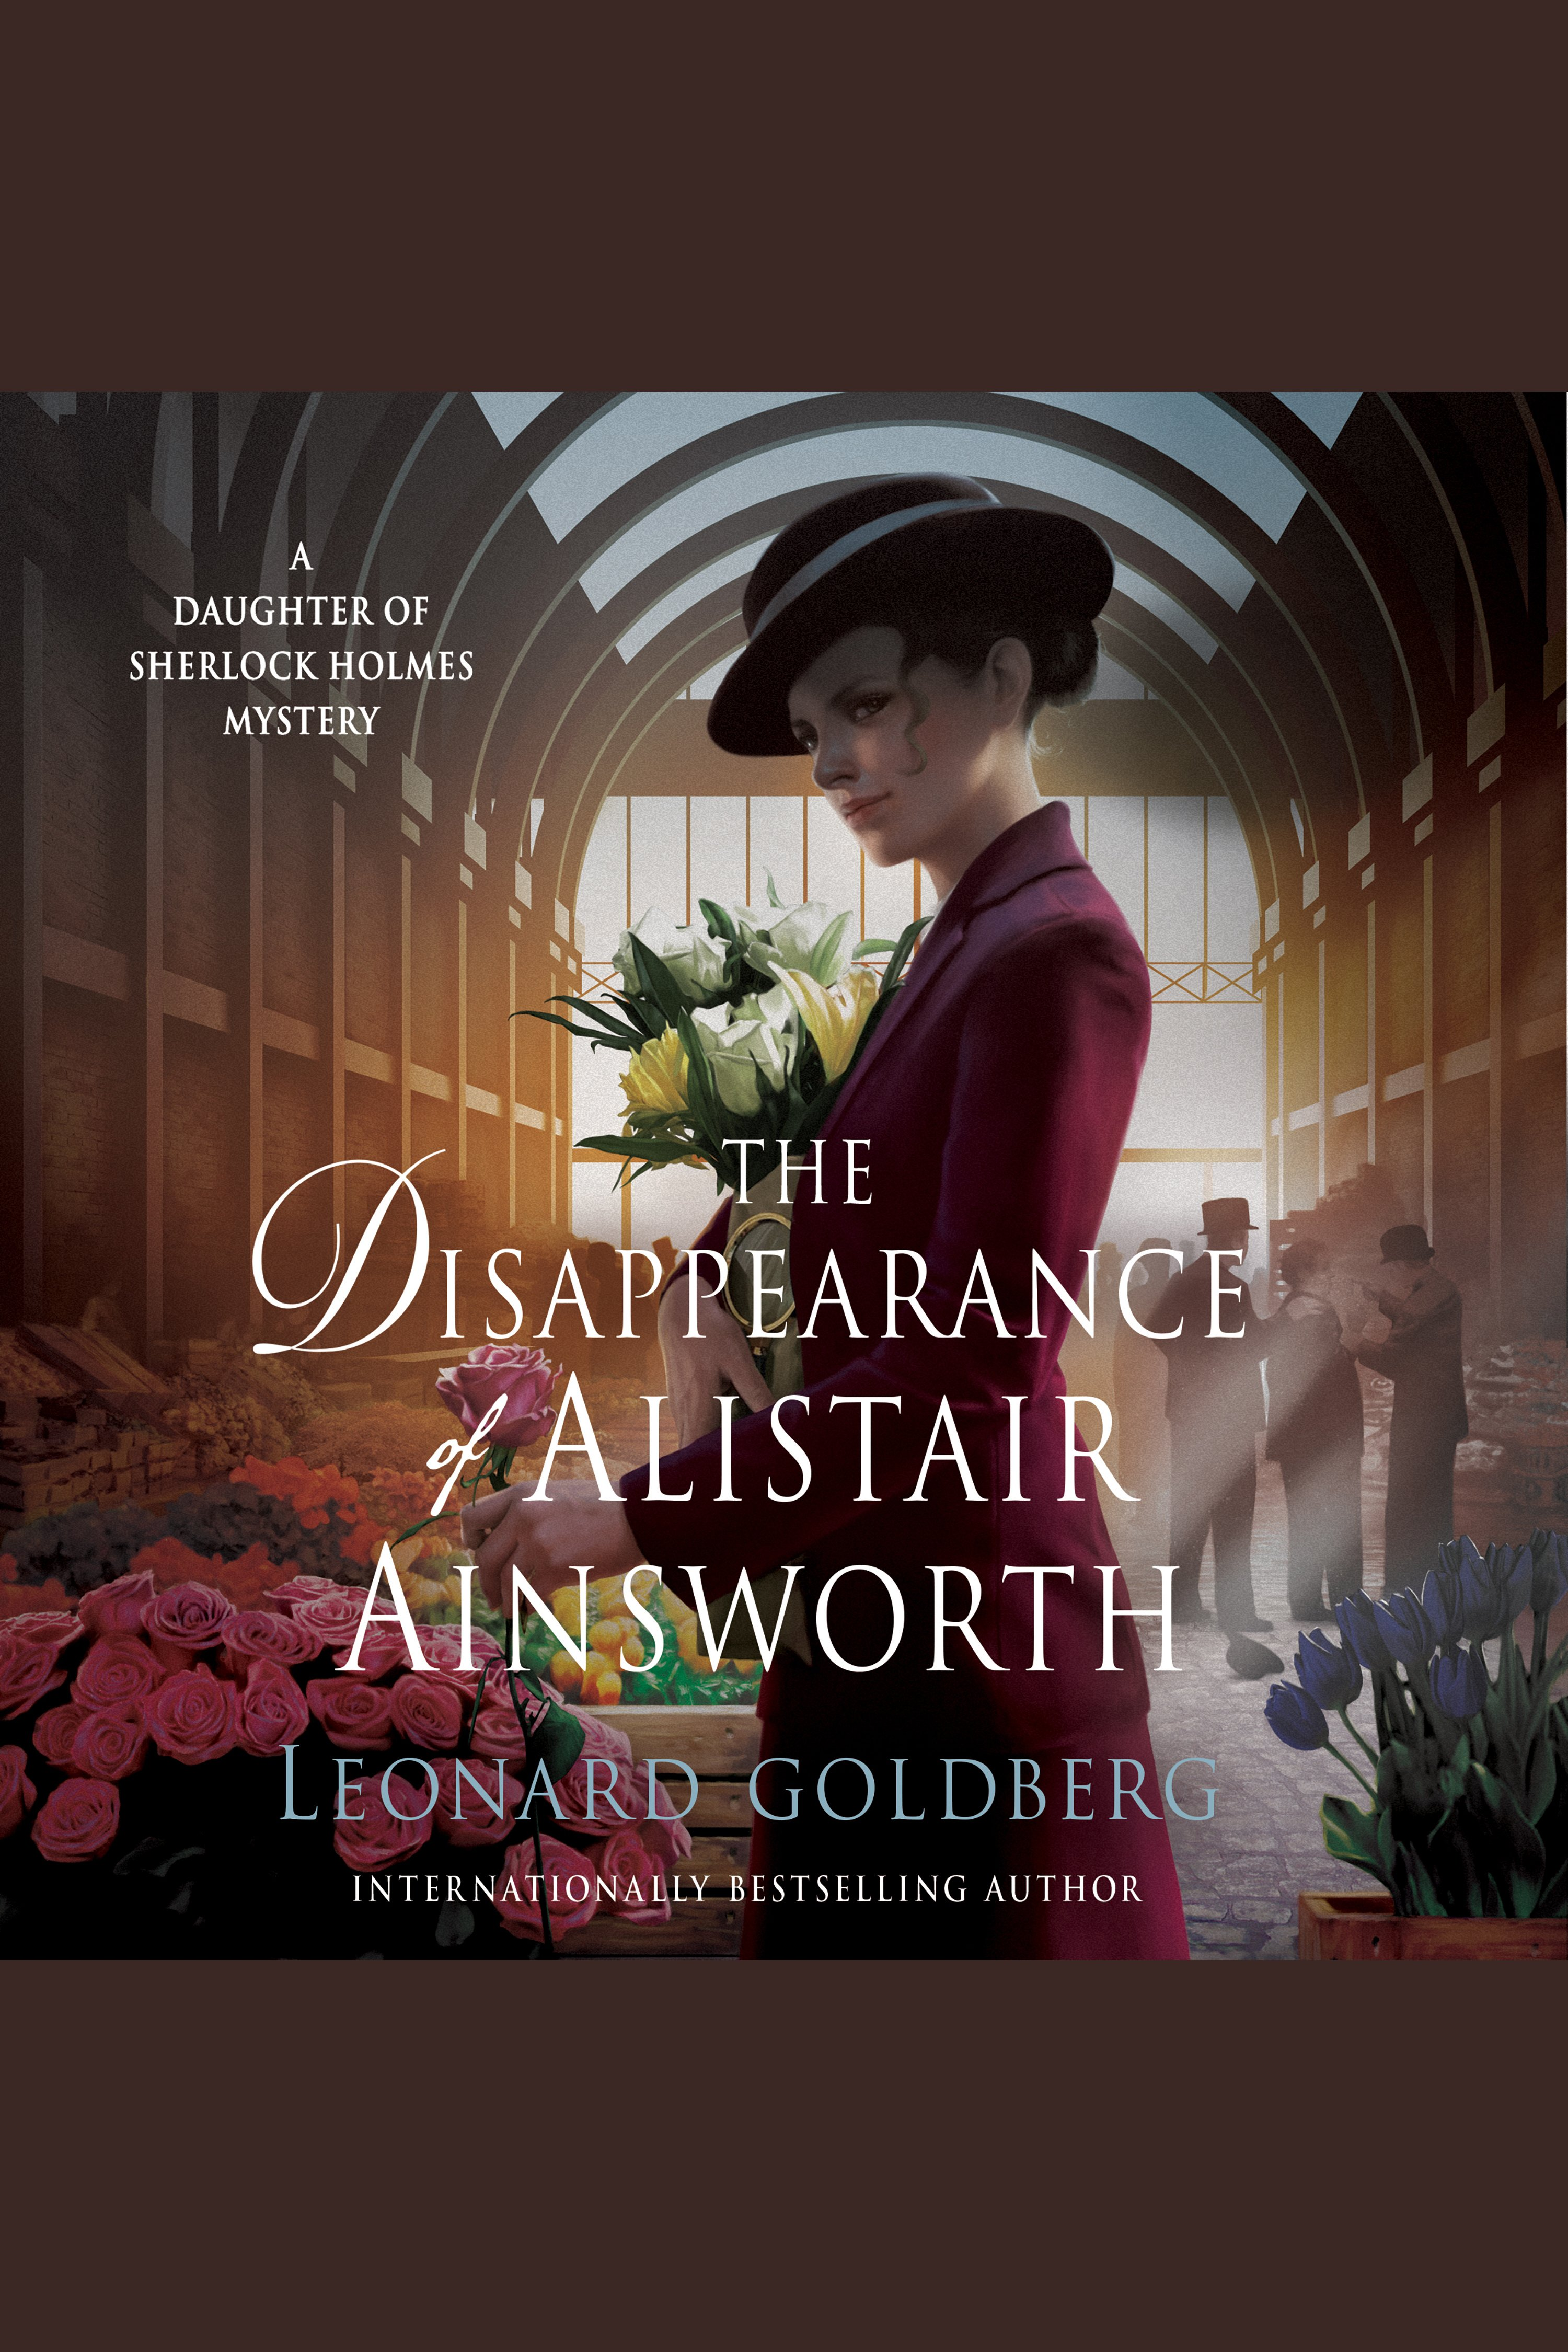 Disappearance of Alistair Ainsworth, The A Daughter of Sherlock Holmes Mystery